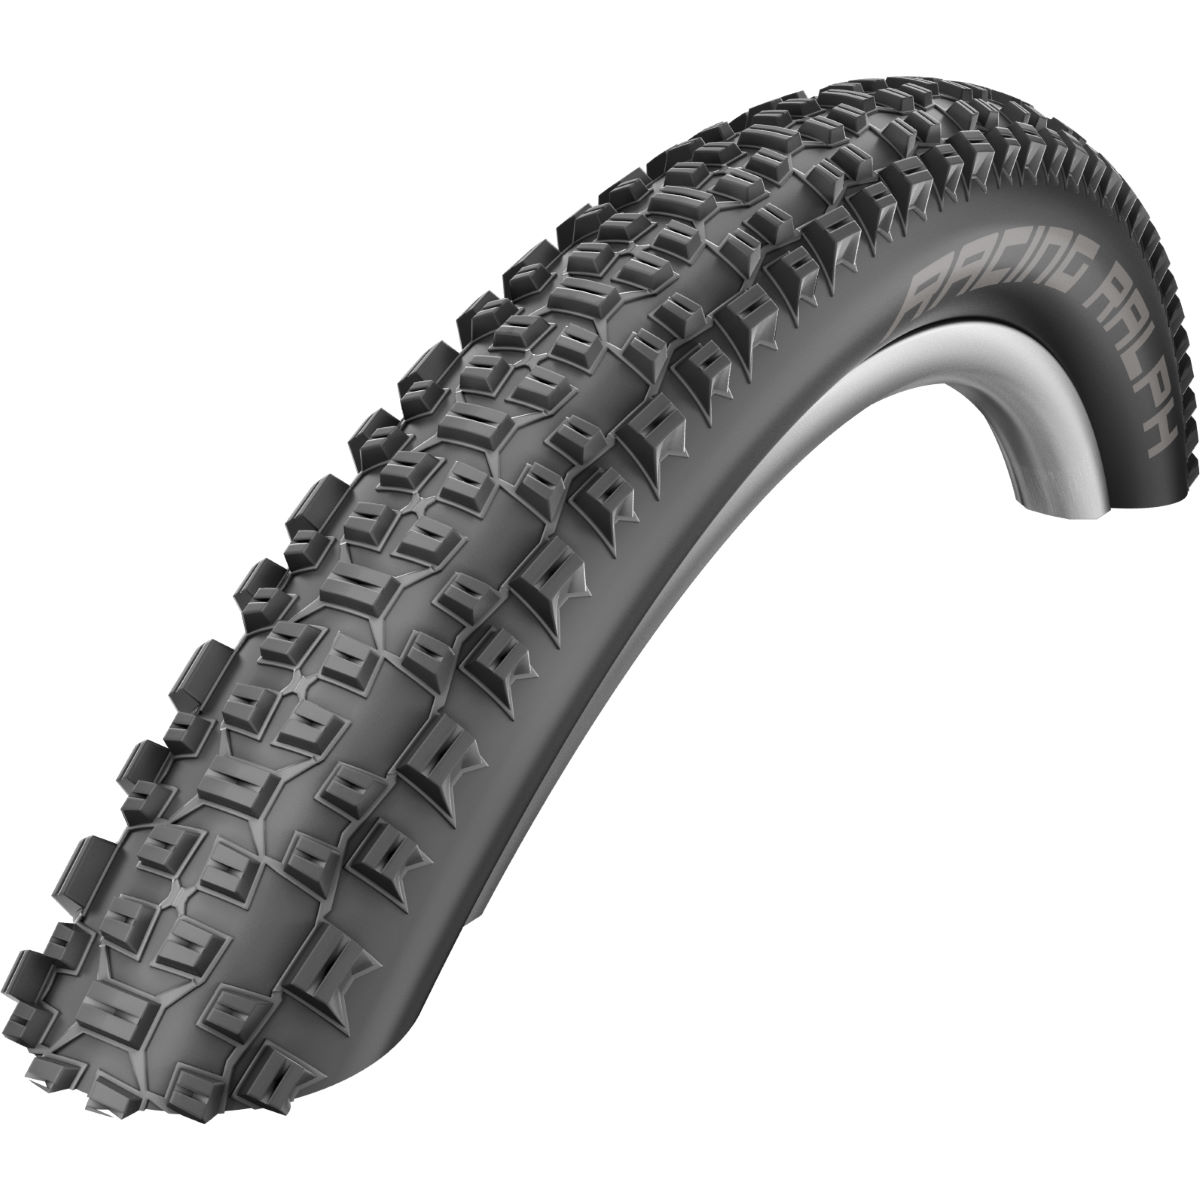 Pneu VTT Schwalbe Racing Ralph Addix Performance - 26' 26' Noir